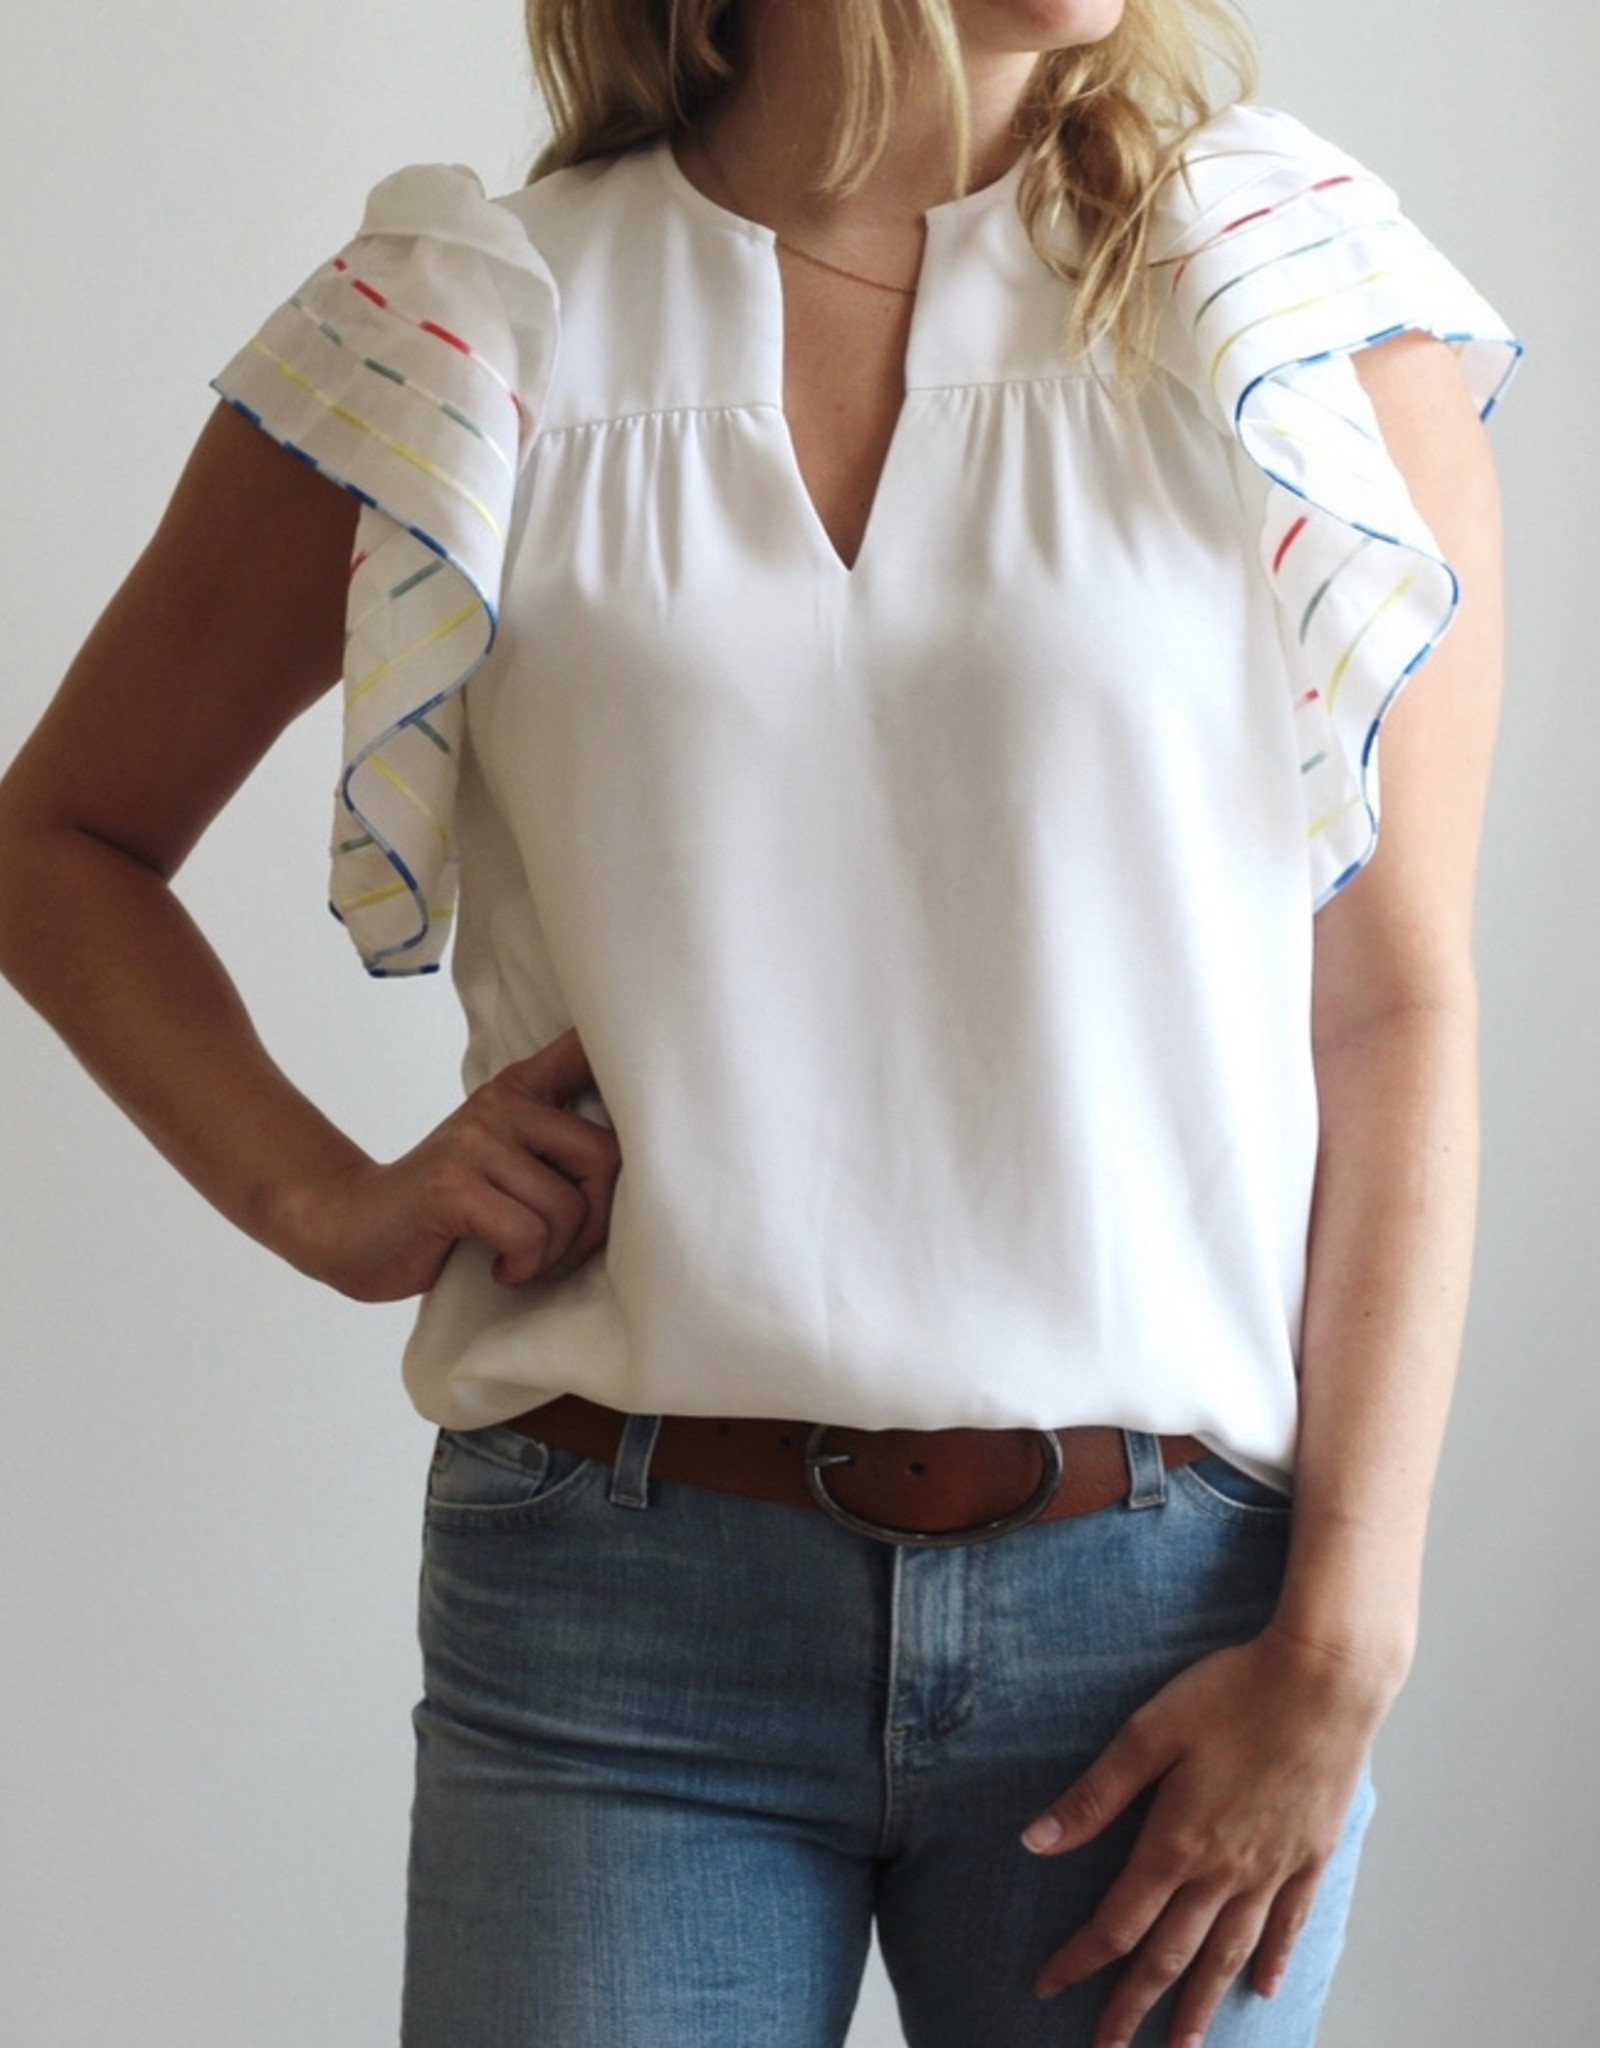 ANNA CATE Becca Top Ombre Embroidered Crepe